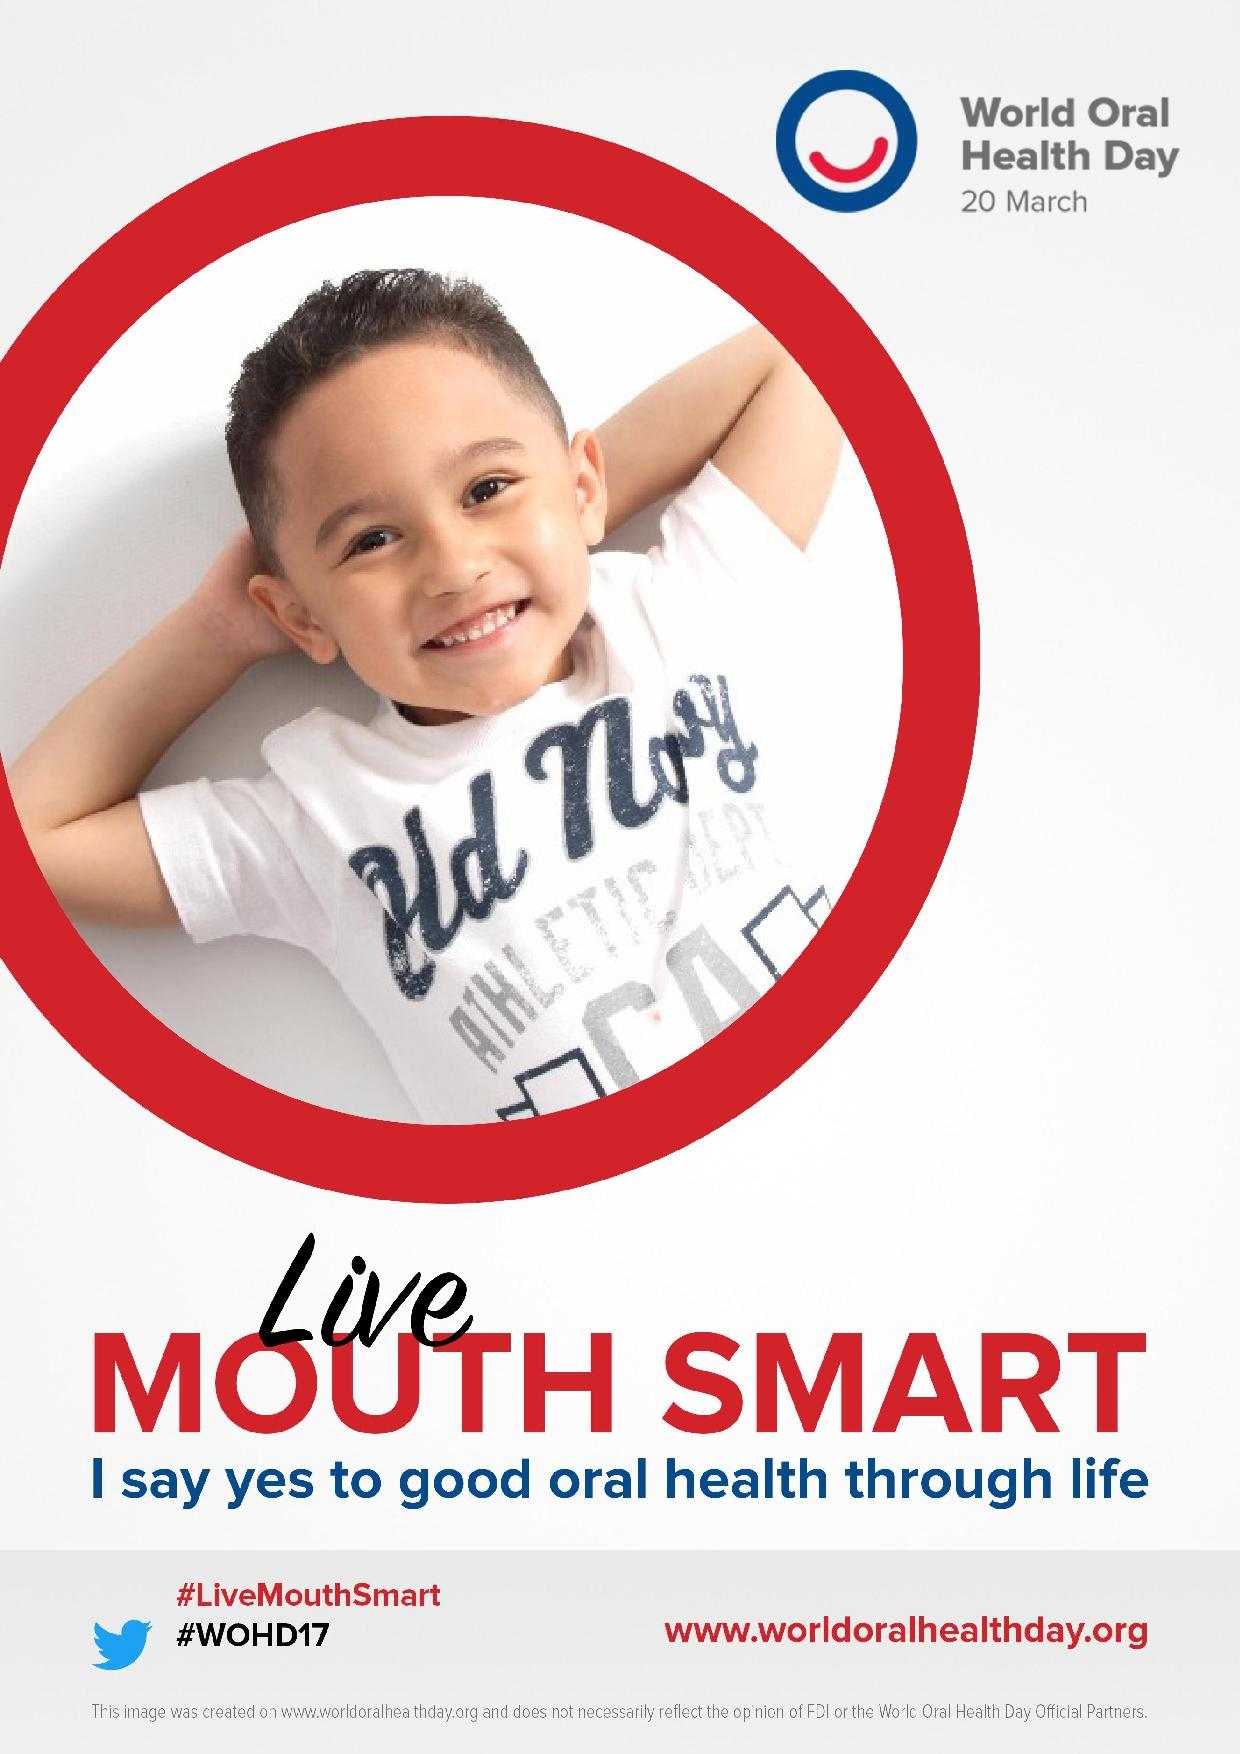 It's World Oral Health Day!